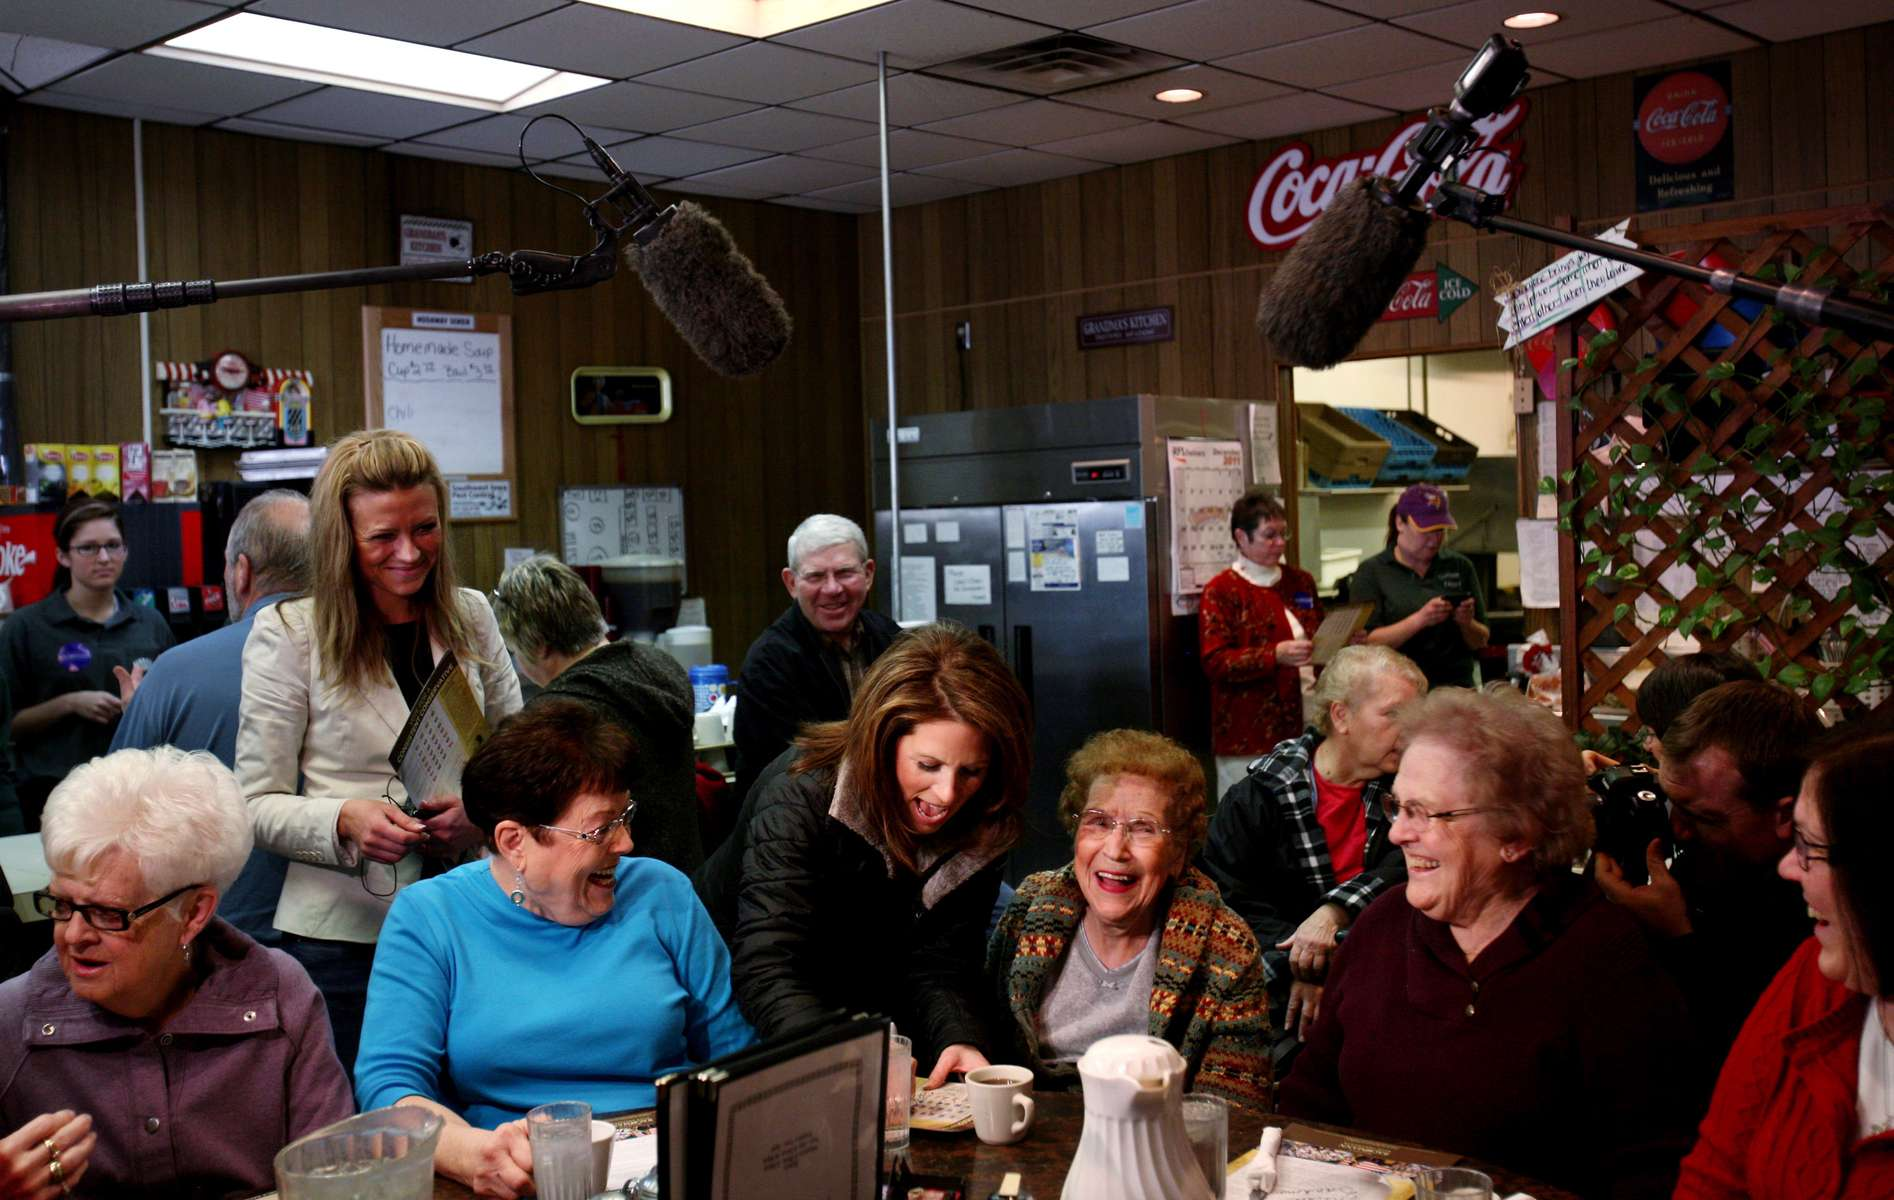 Republican presidential candidate Michele Bachmann, center, jokes with patrons at Nodaway Diner in Greenfield, Iowa.